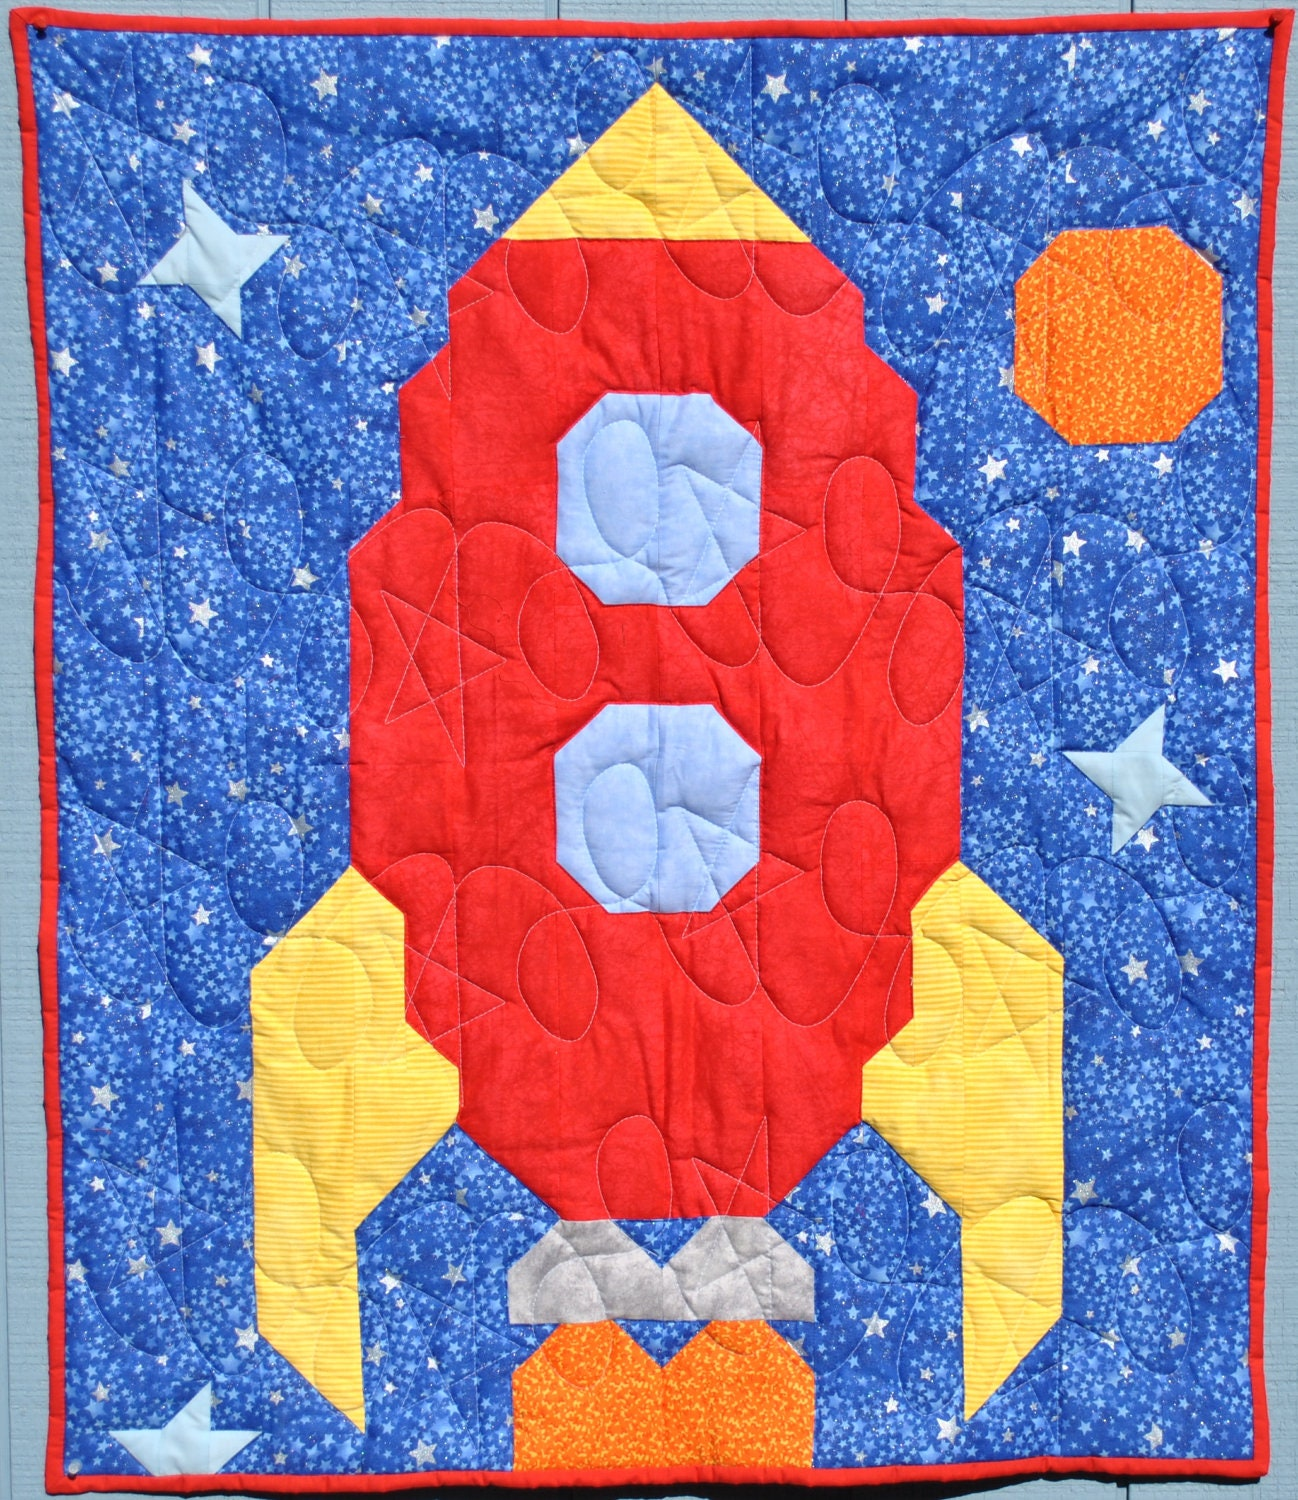 Rocket baby quilt pattern pdf from countedquilts on etsy for Outer space quilt patterns